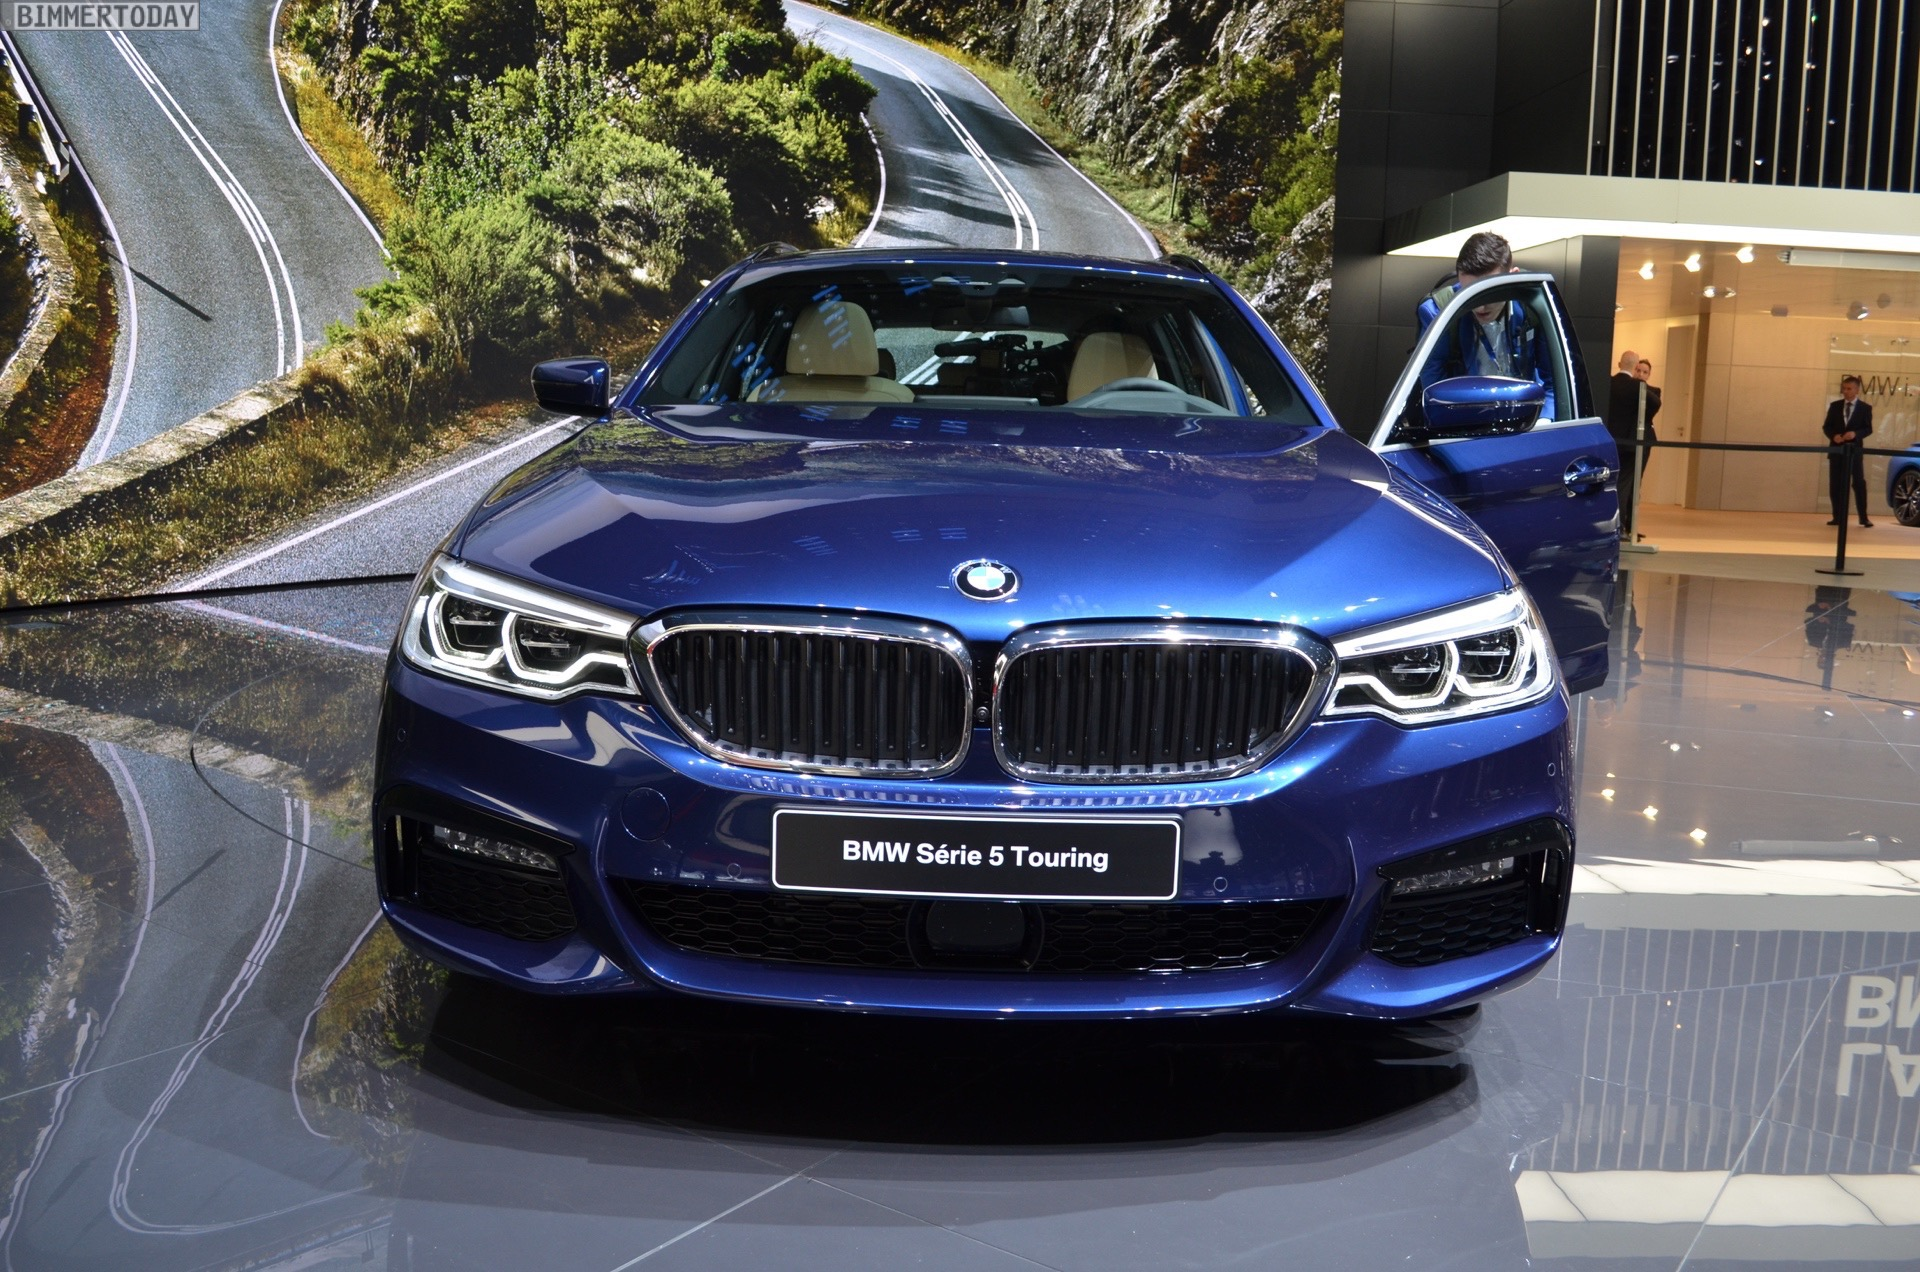 new photos of the 2017 bmw 530d touring with m sport package. Black Bedroom Furniture Sets. Home Design Ideas